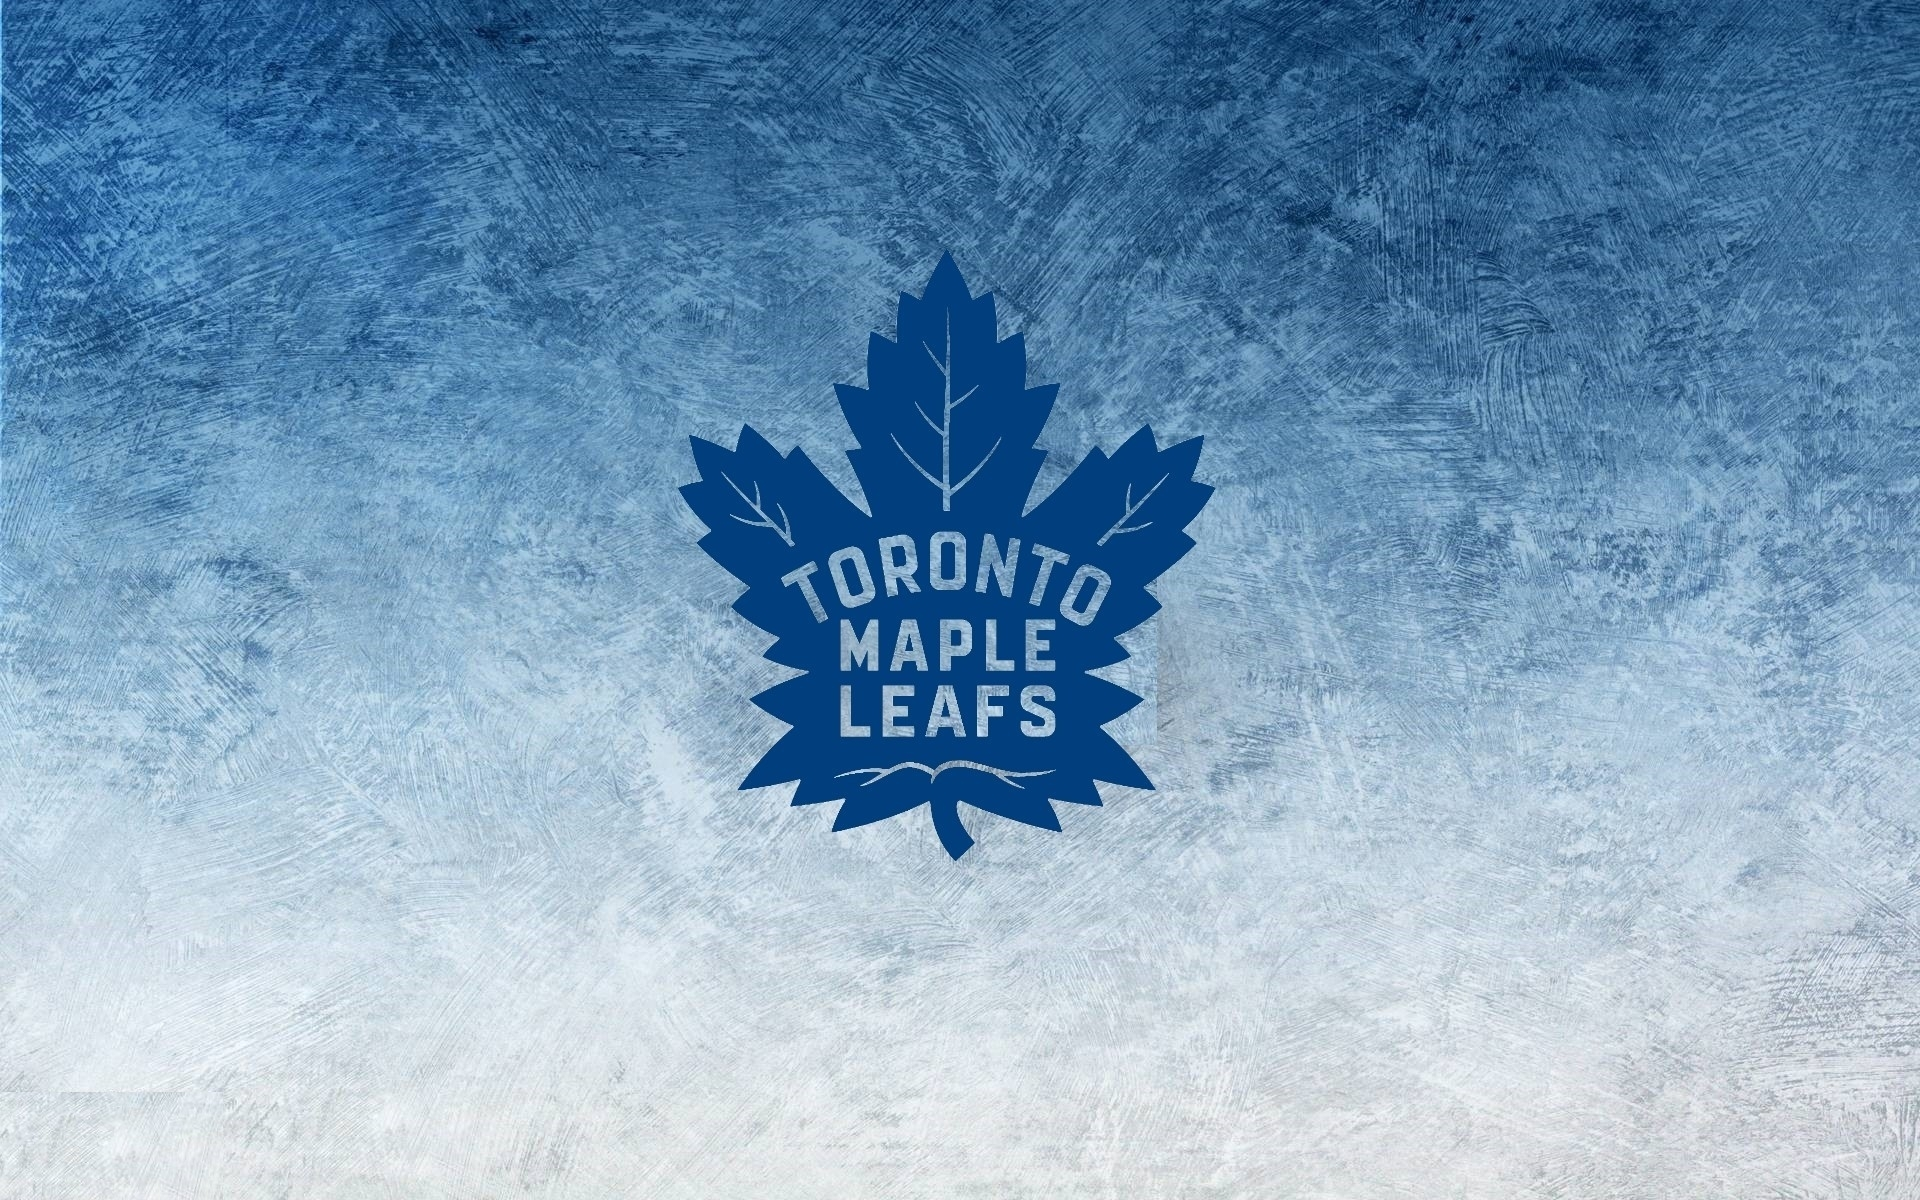 toronto maple leafs wallpaper 2018 (63+ images)